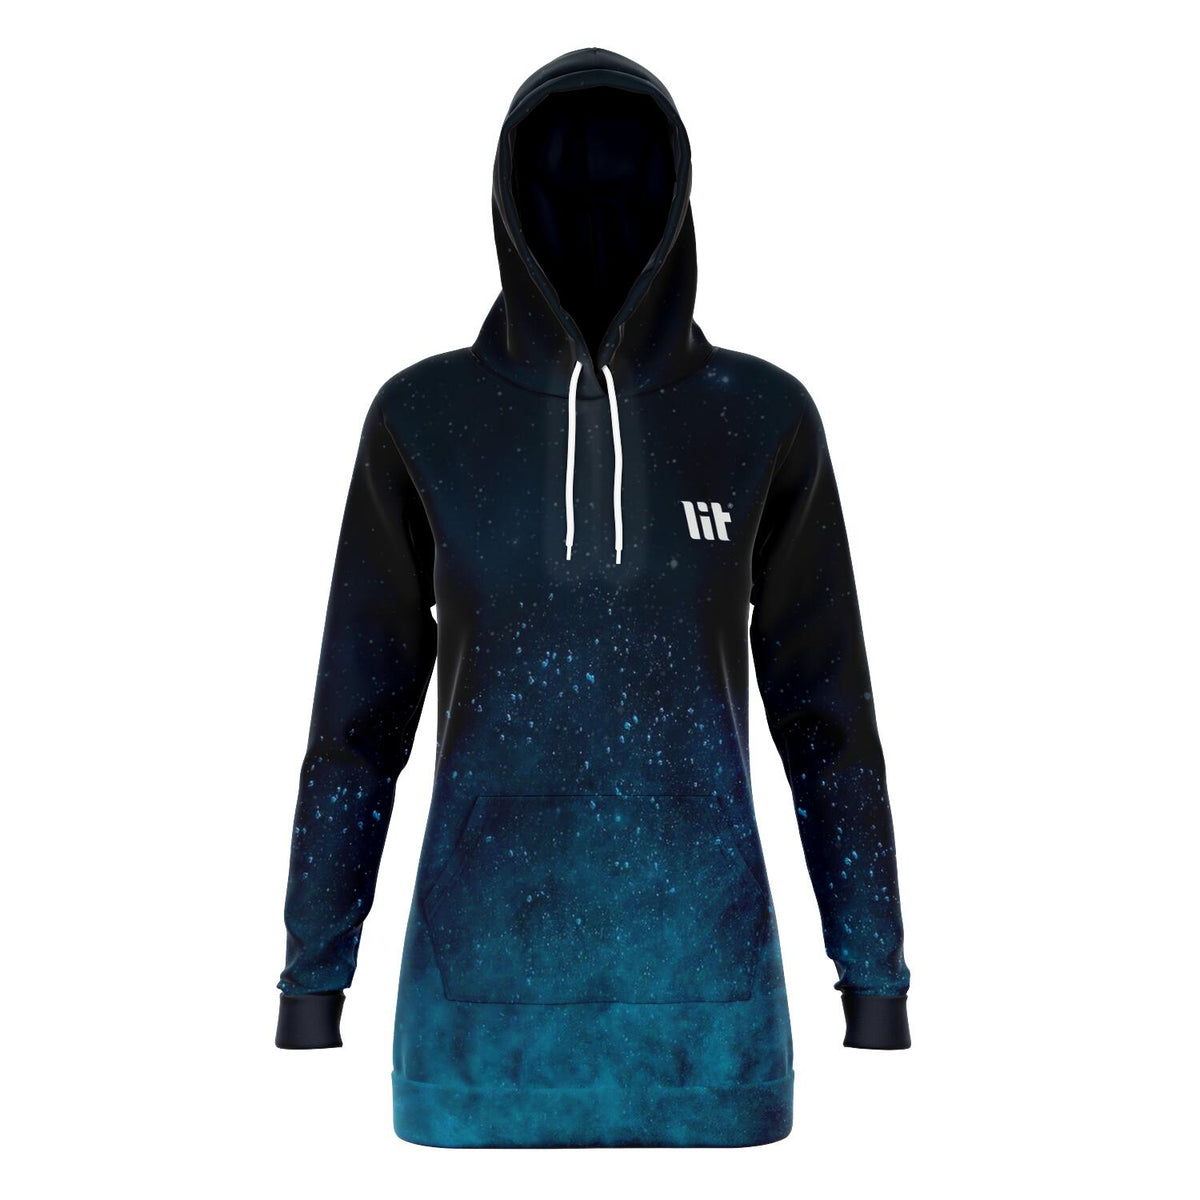 Scattered blue dust Hoodie Dress